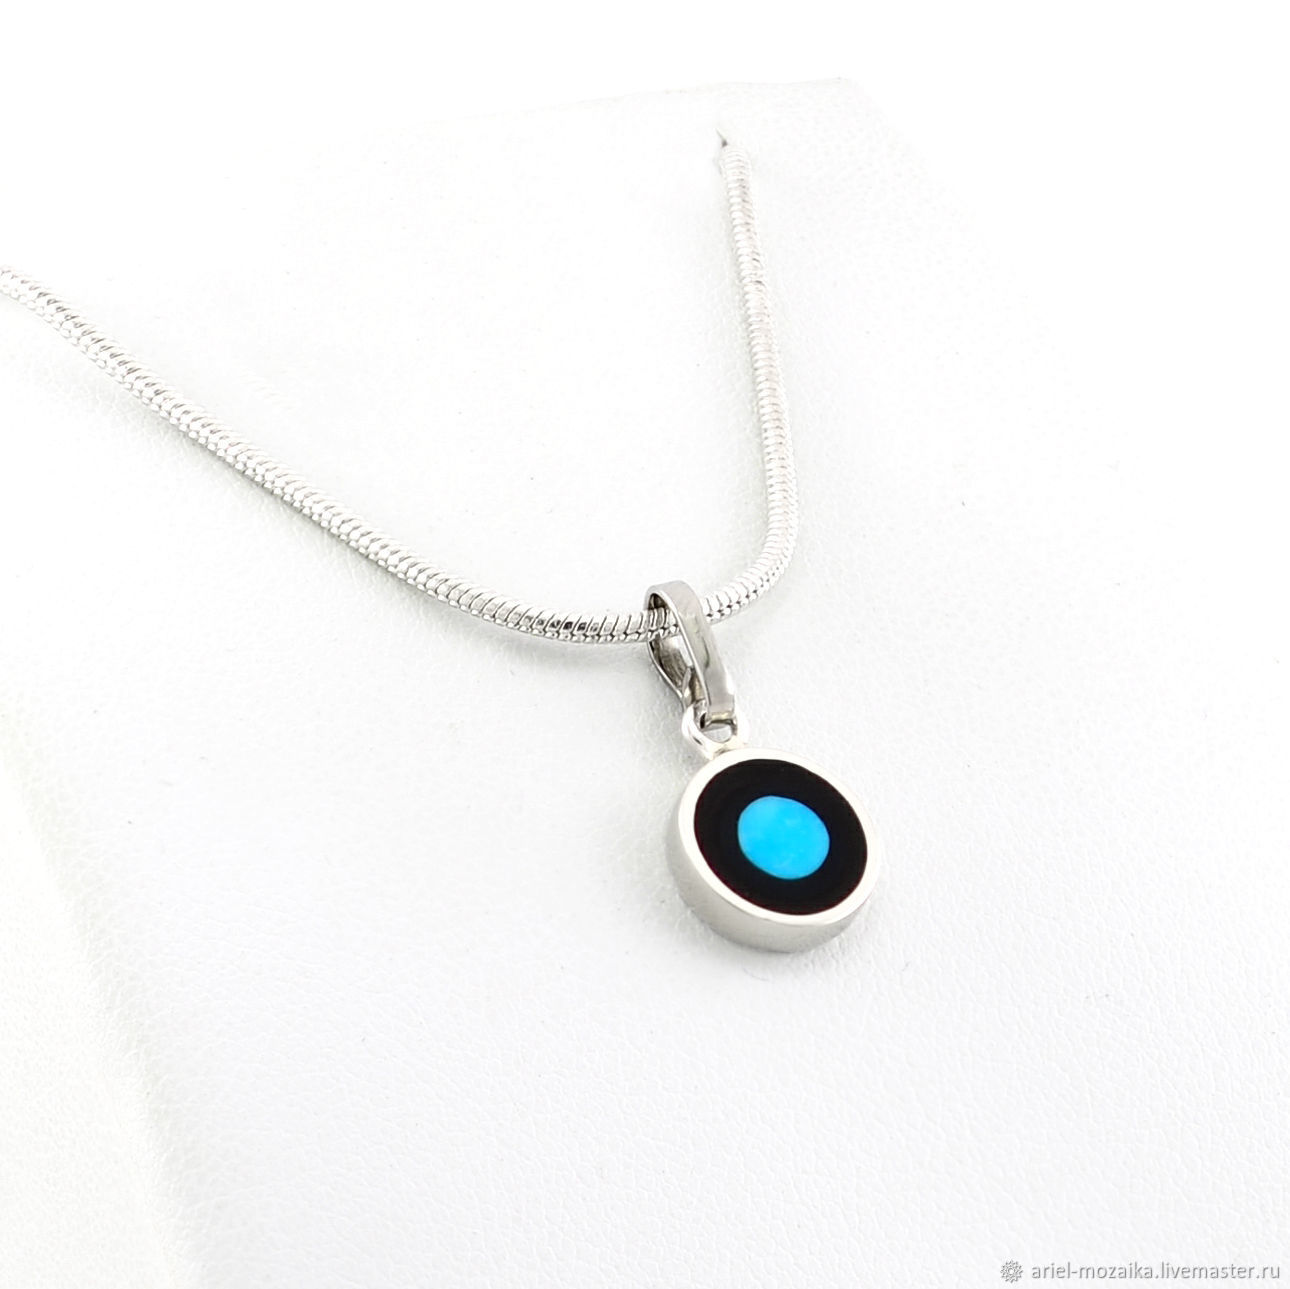 Pendant with turquoise. Small handmade pendant, Pendant, Moscow,  Фото №1